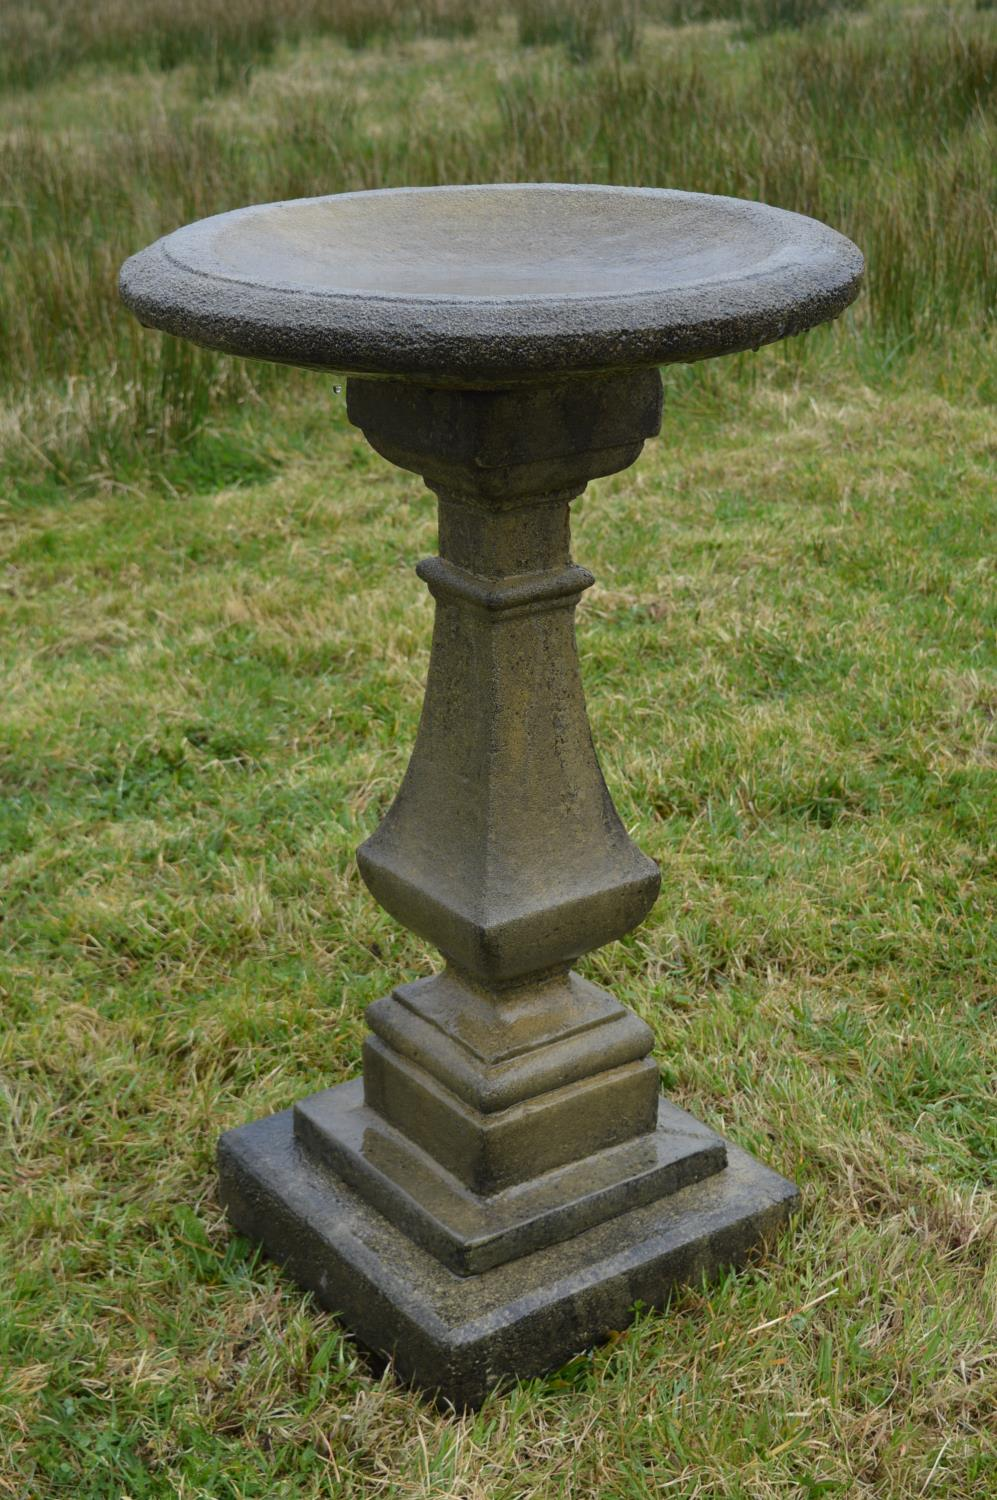 Composition bird bath in the Victorian style. - Image 2 of 2